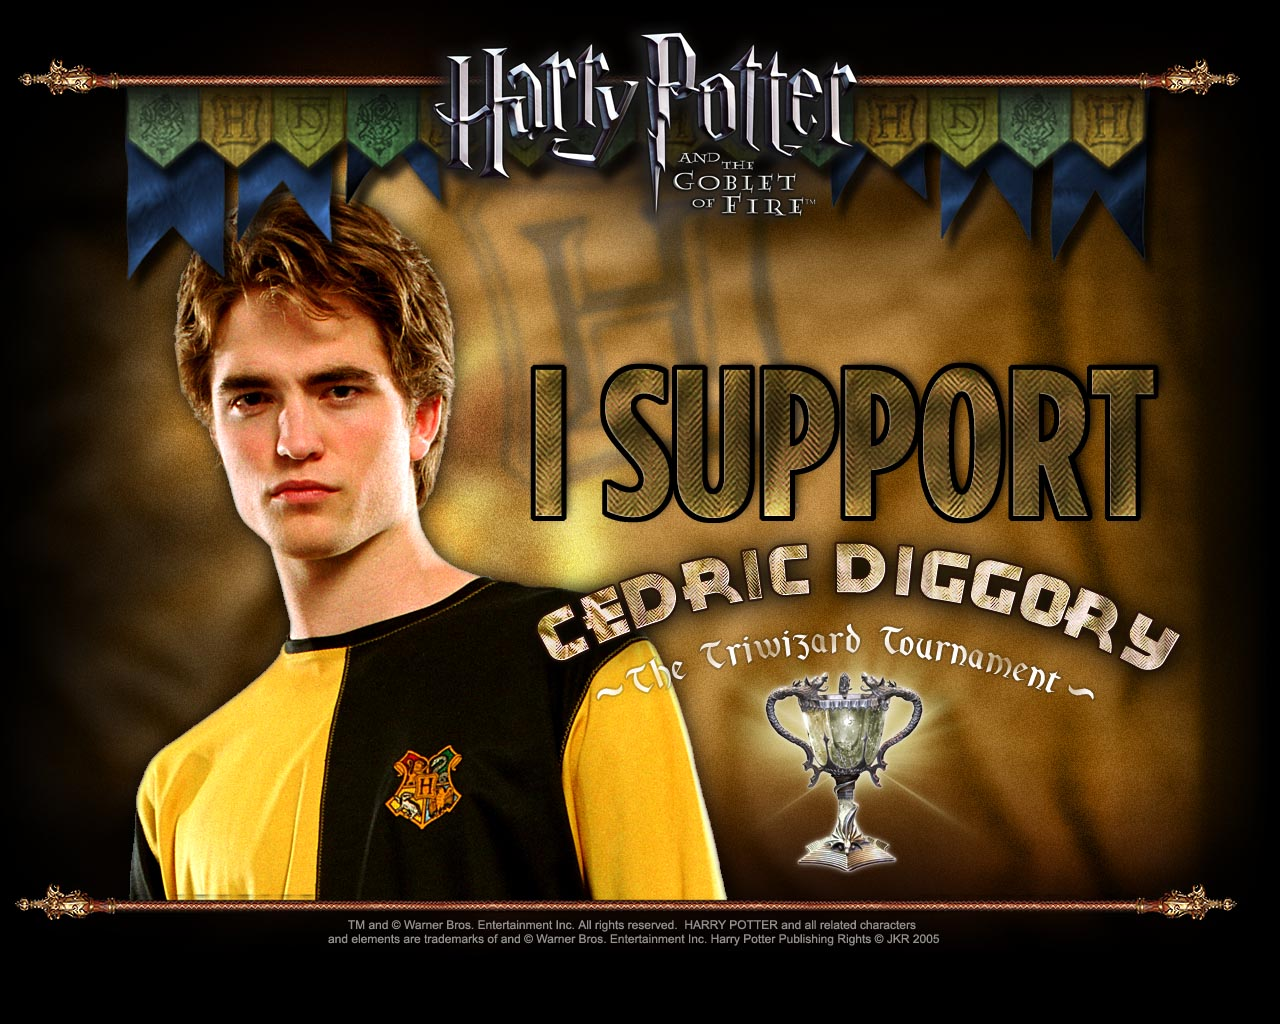 http://4.bp.blogspot.com/-XeMQD9wXZPE/TeSAATnMwRI/AAAAAAAAAJw/YIfrp9W7zjI/s1600/Robert_Pattinson_in_Harry_Potter_and_the_Goblet_of_Fire_Wallpaper_3_1280.jpg